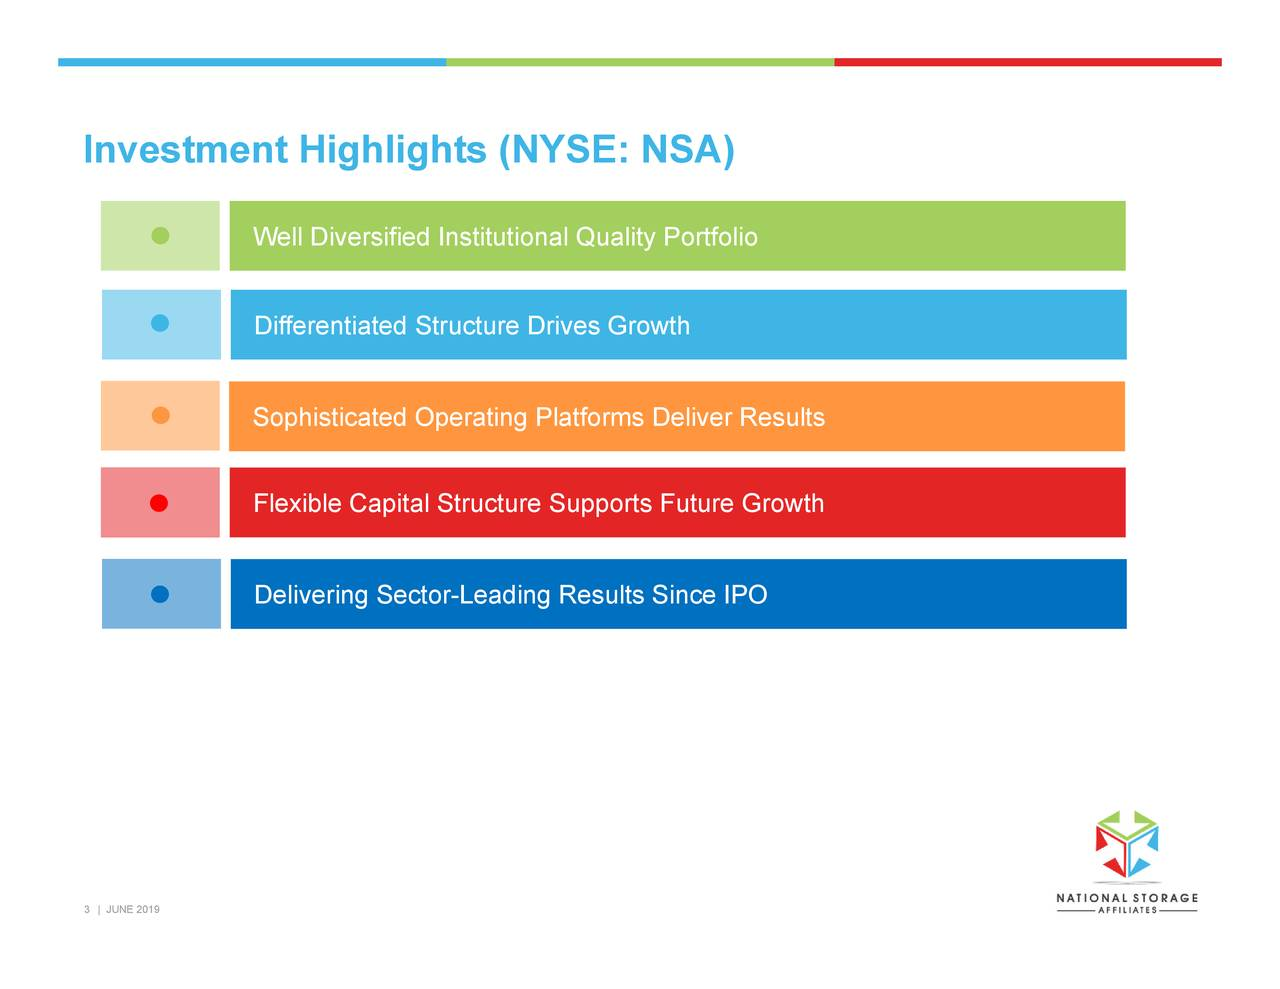 | JUNE 2019 Investment Highlights (NYSE: NSA) 3